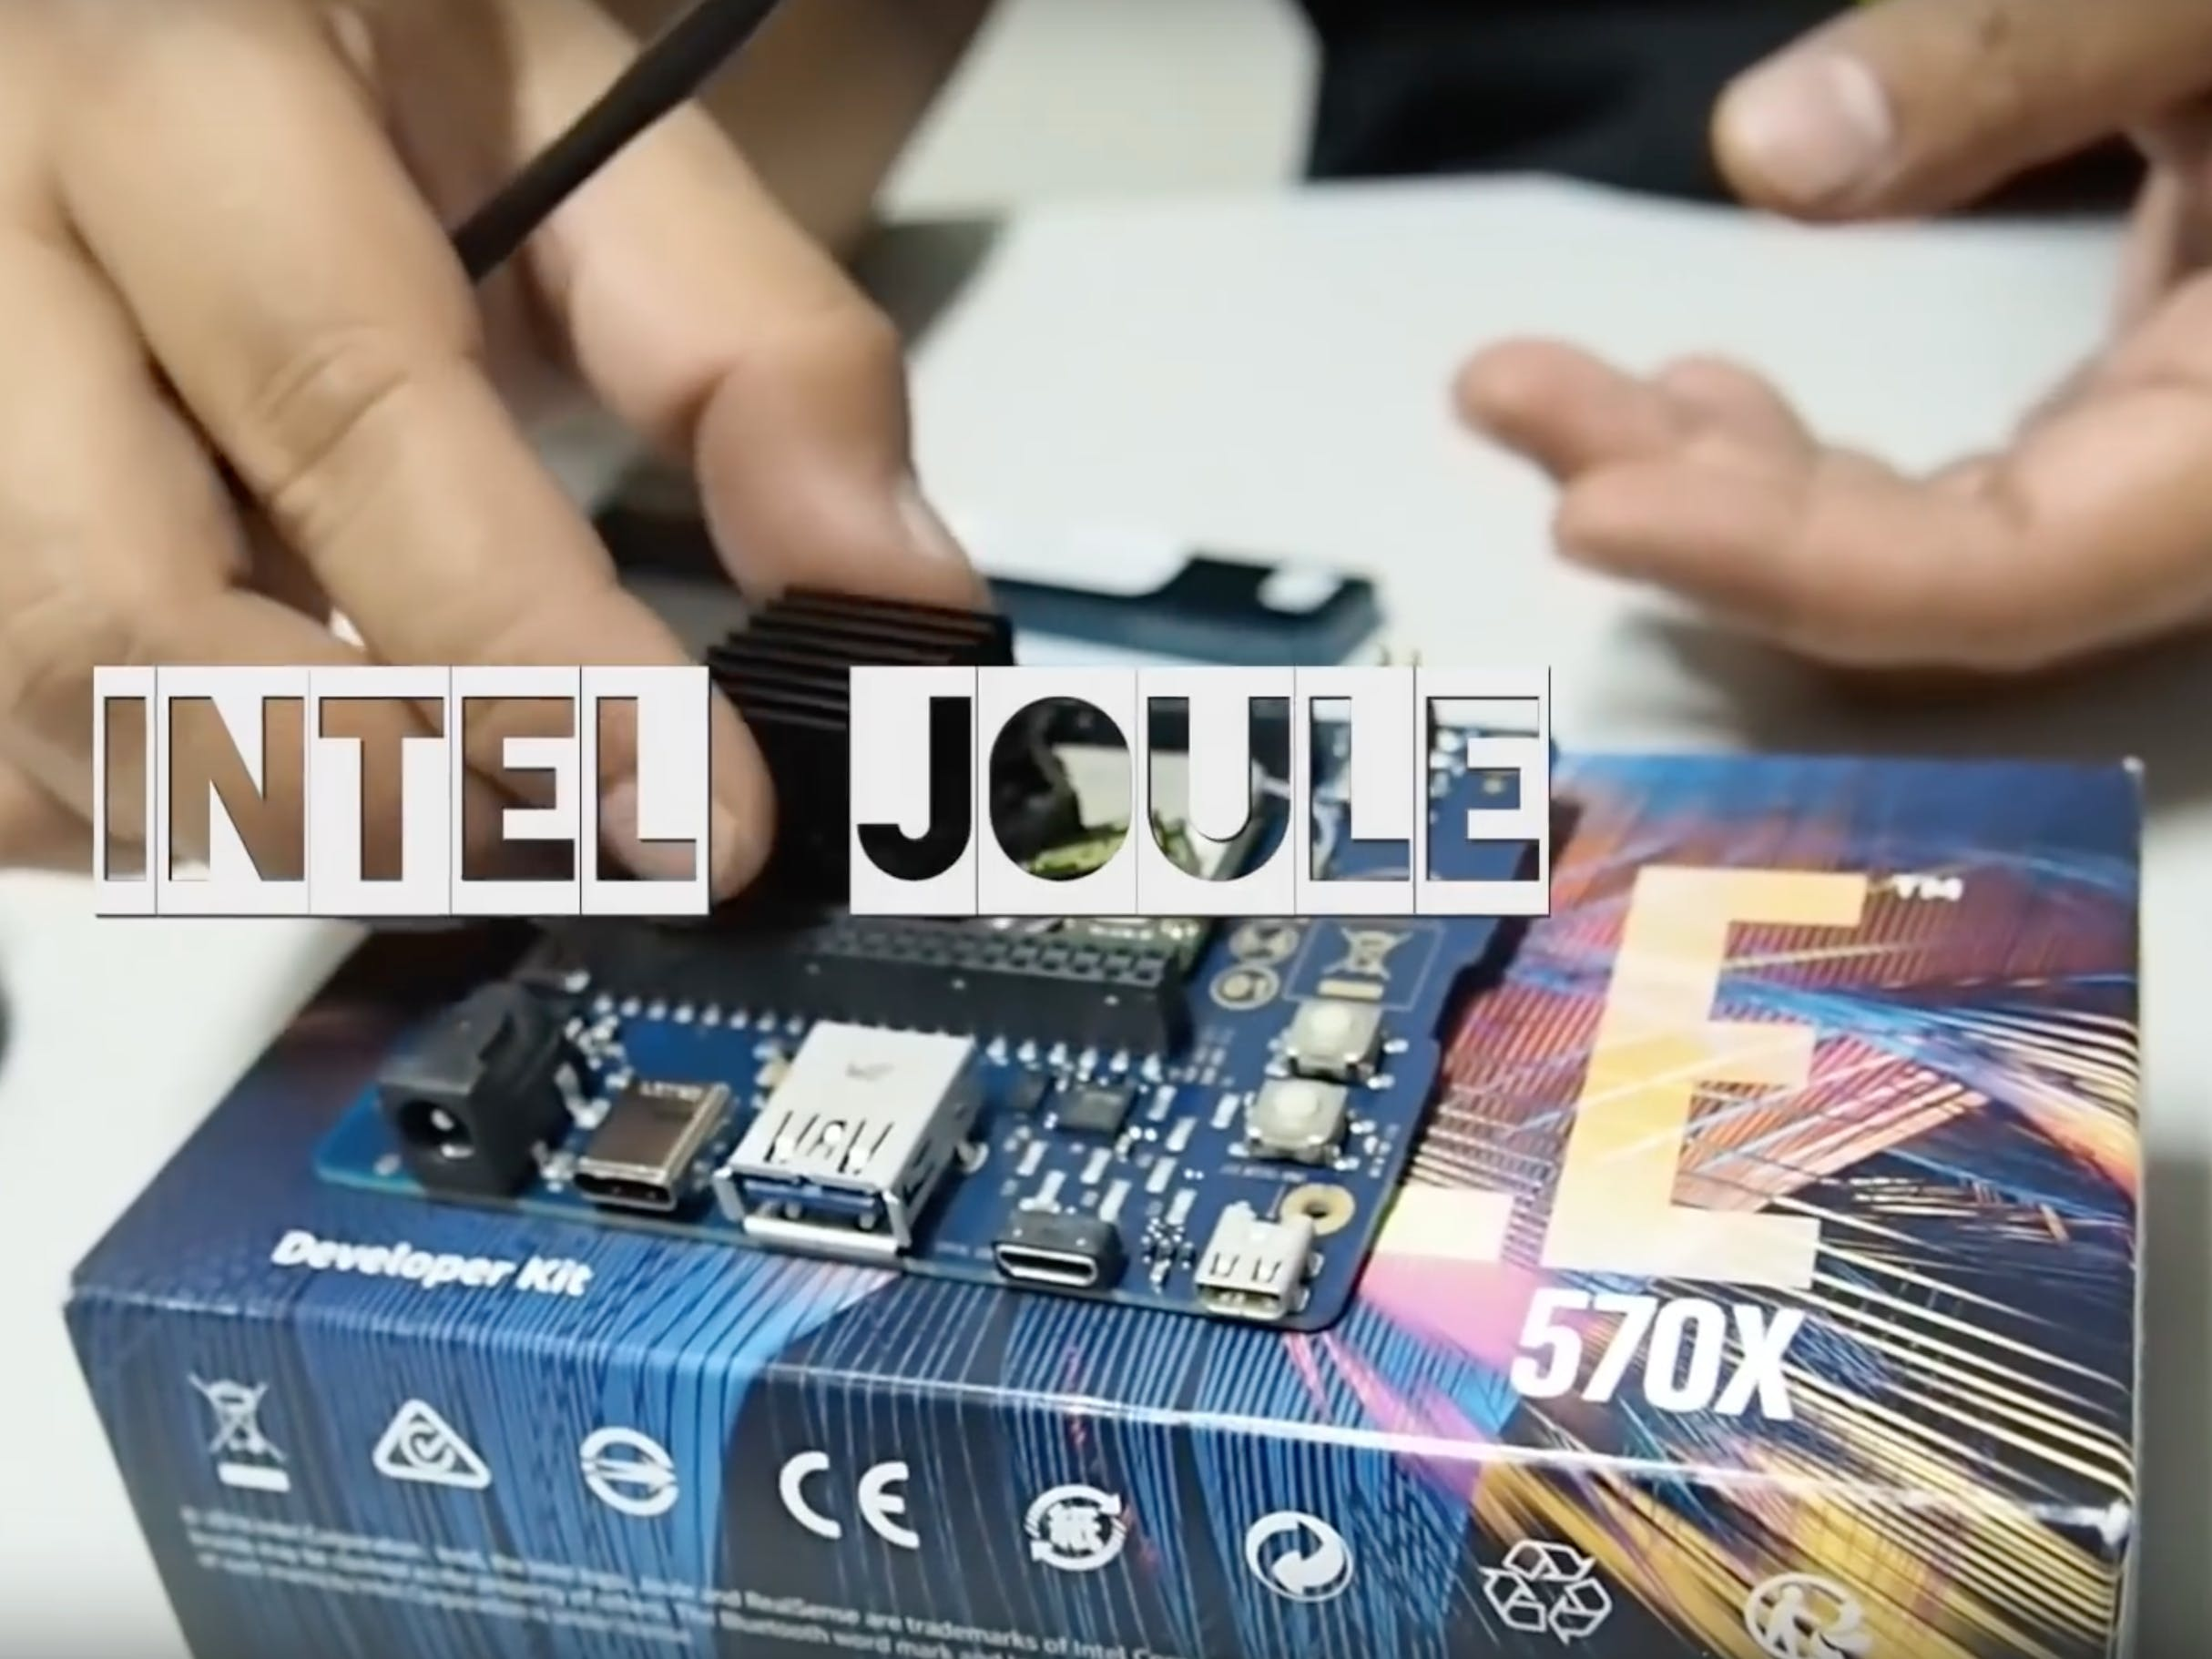 Unboxing Intel Joule